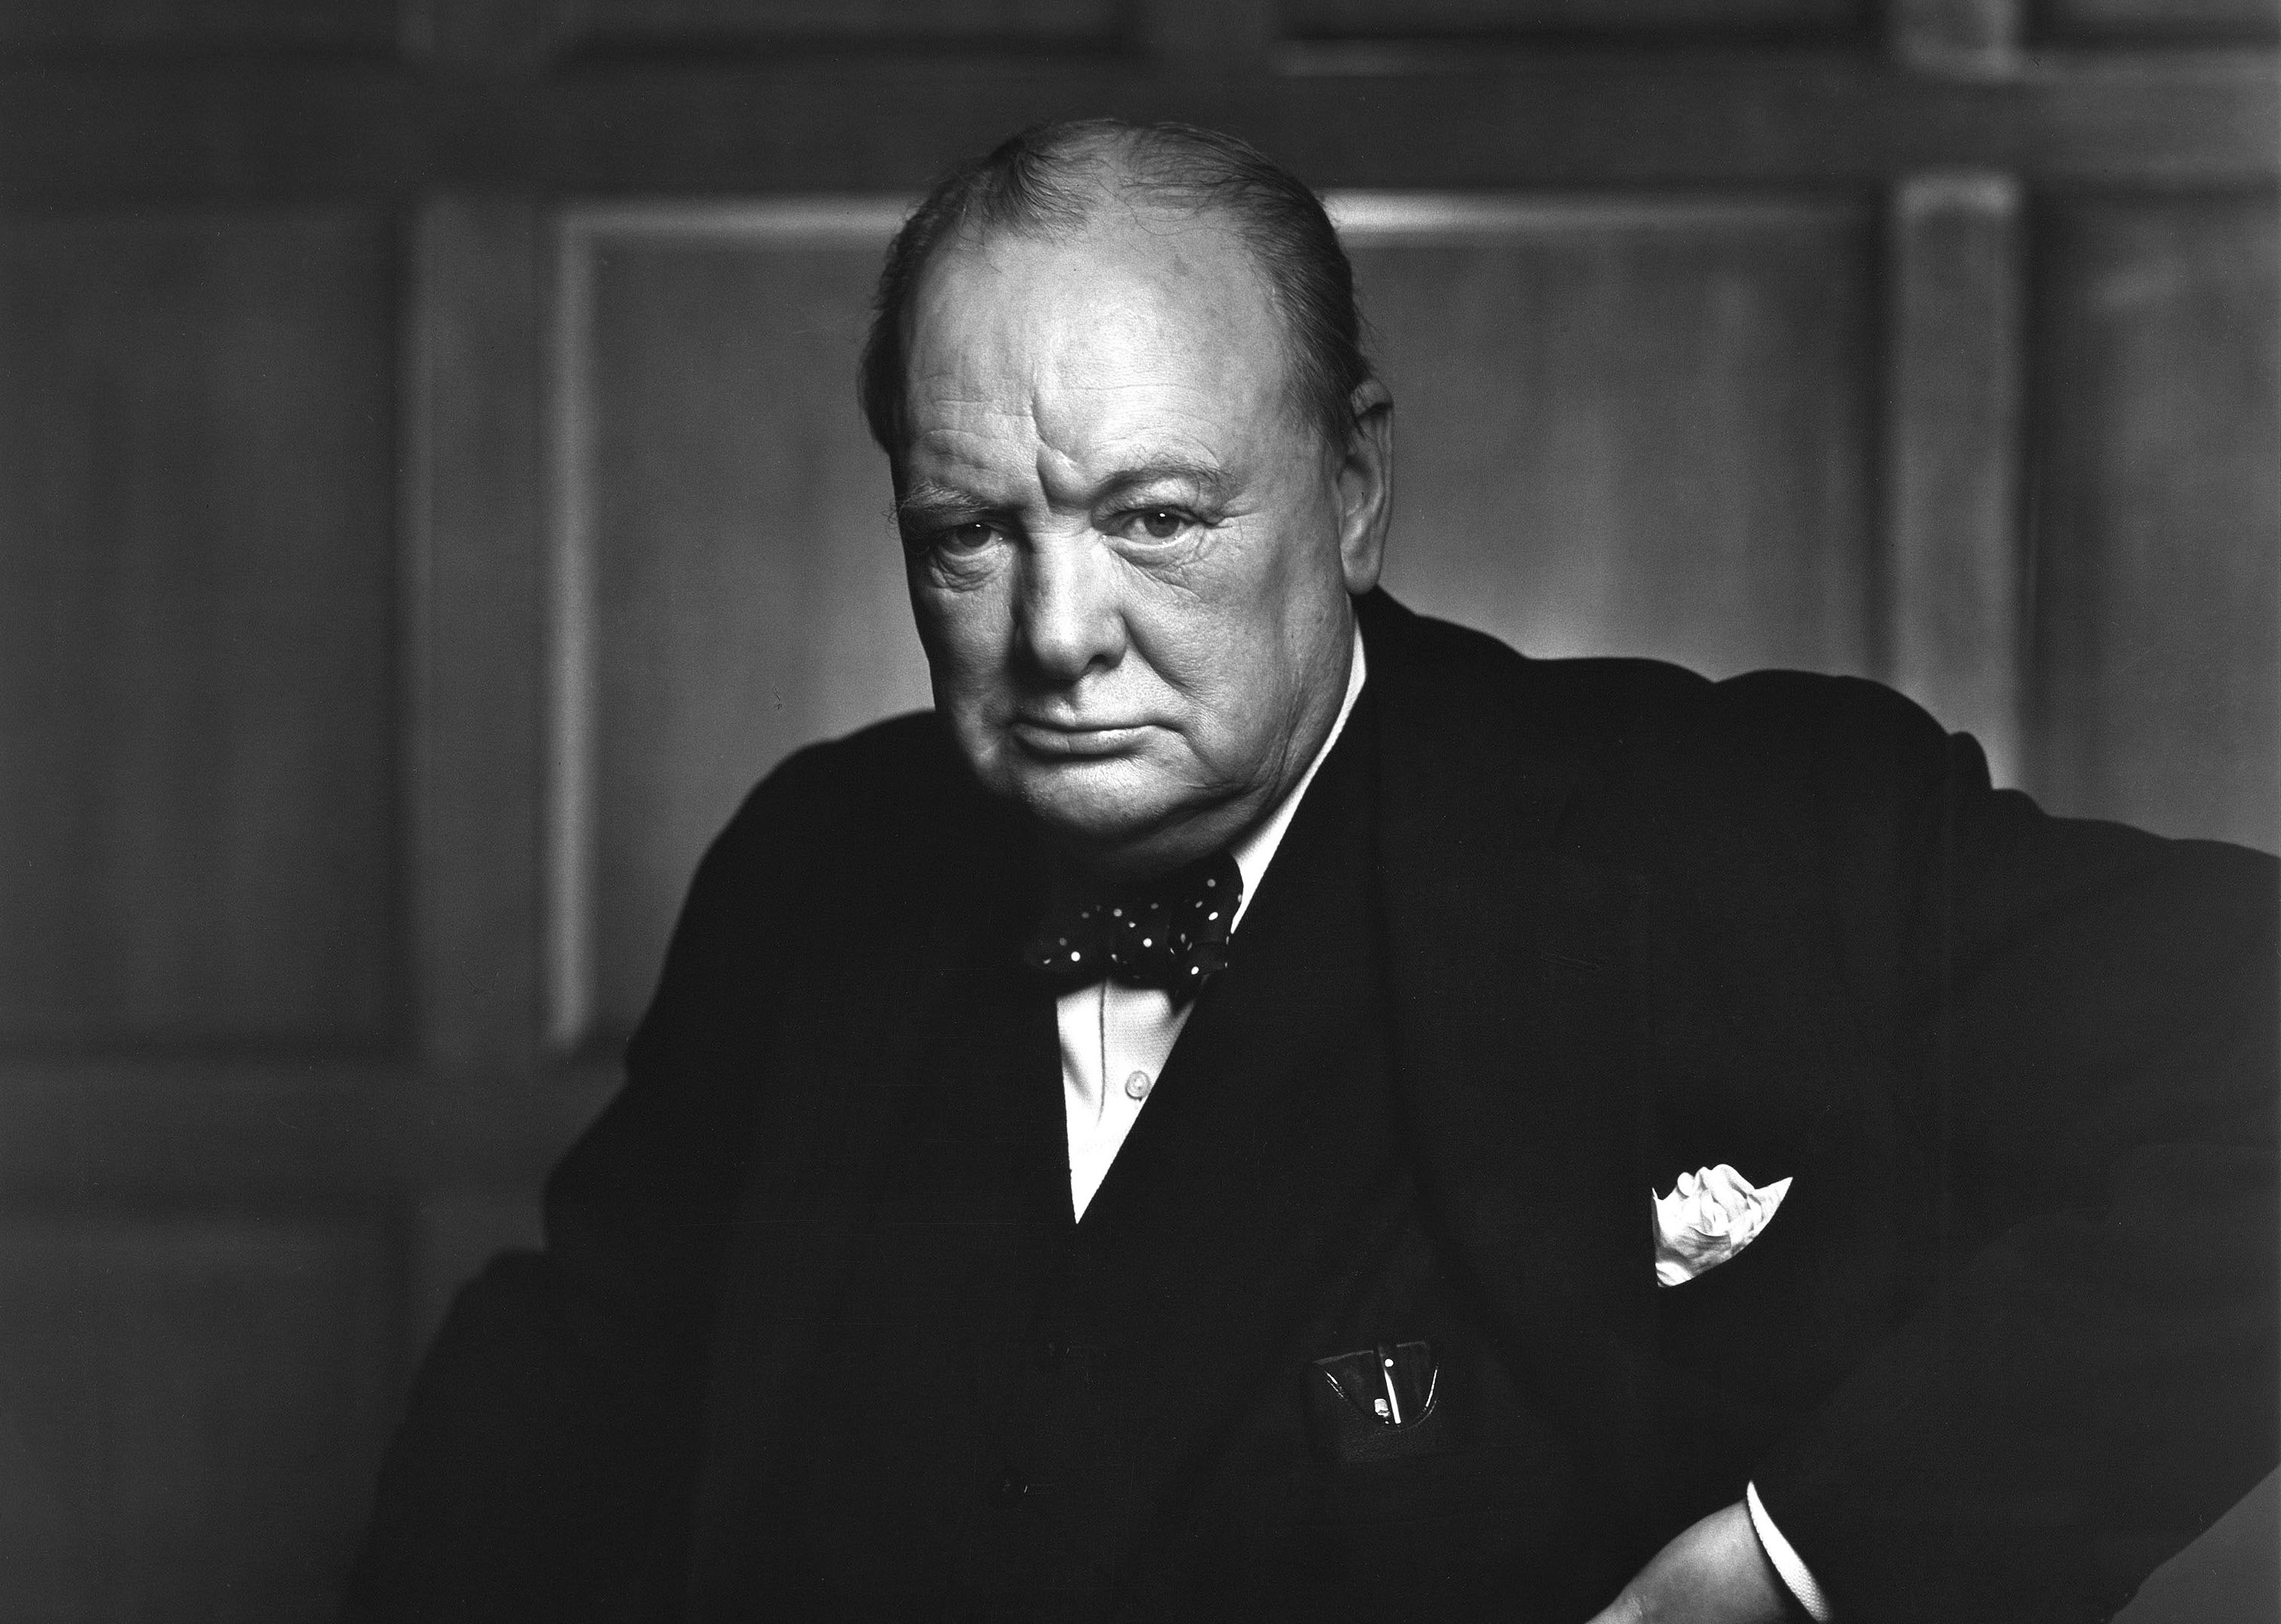 Sir_Winston_Churchill_-_19086236948.jpg